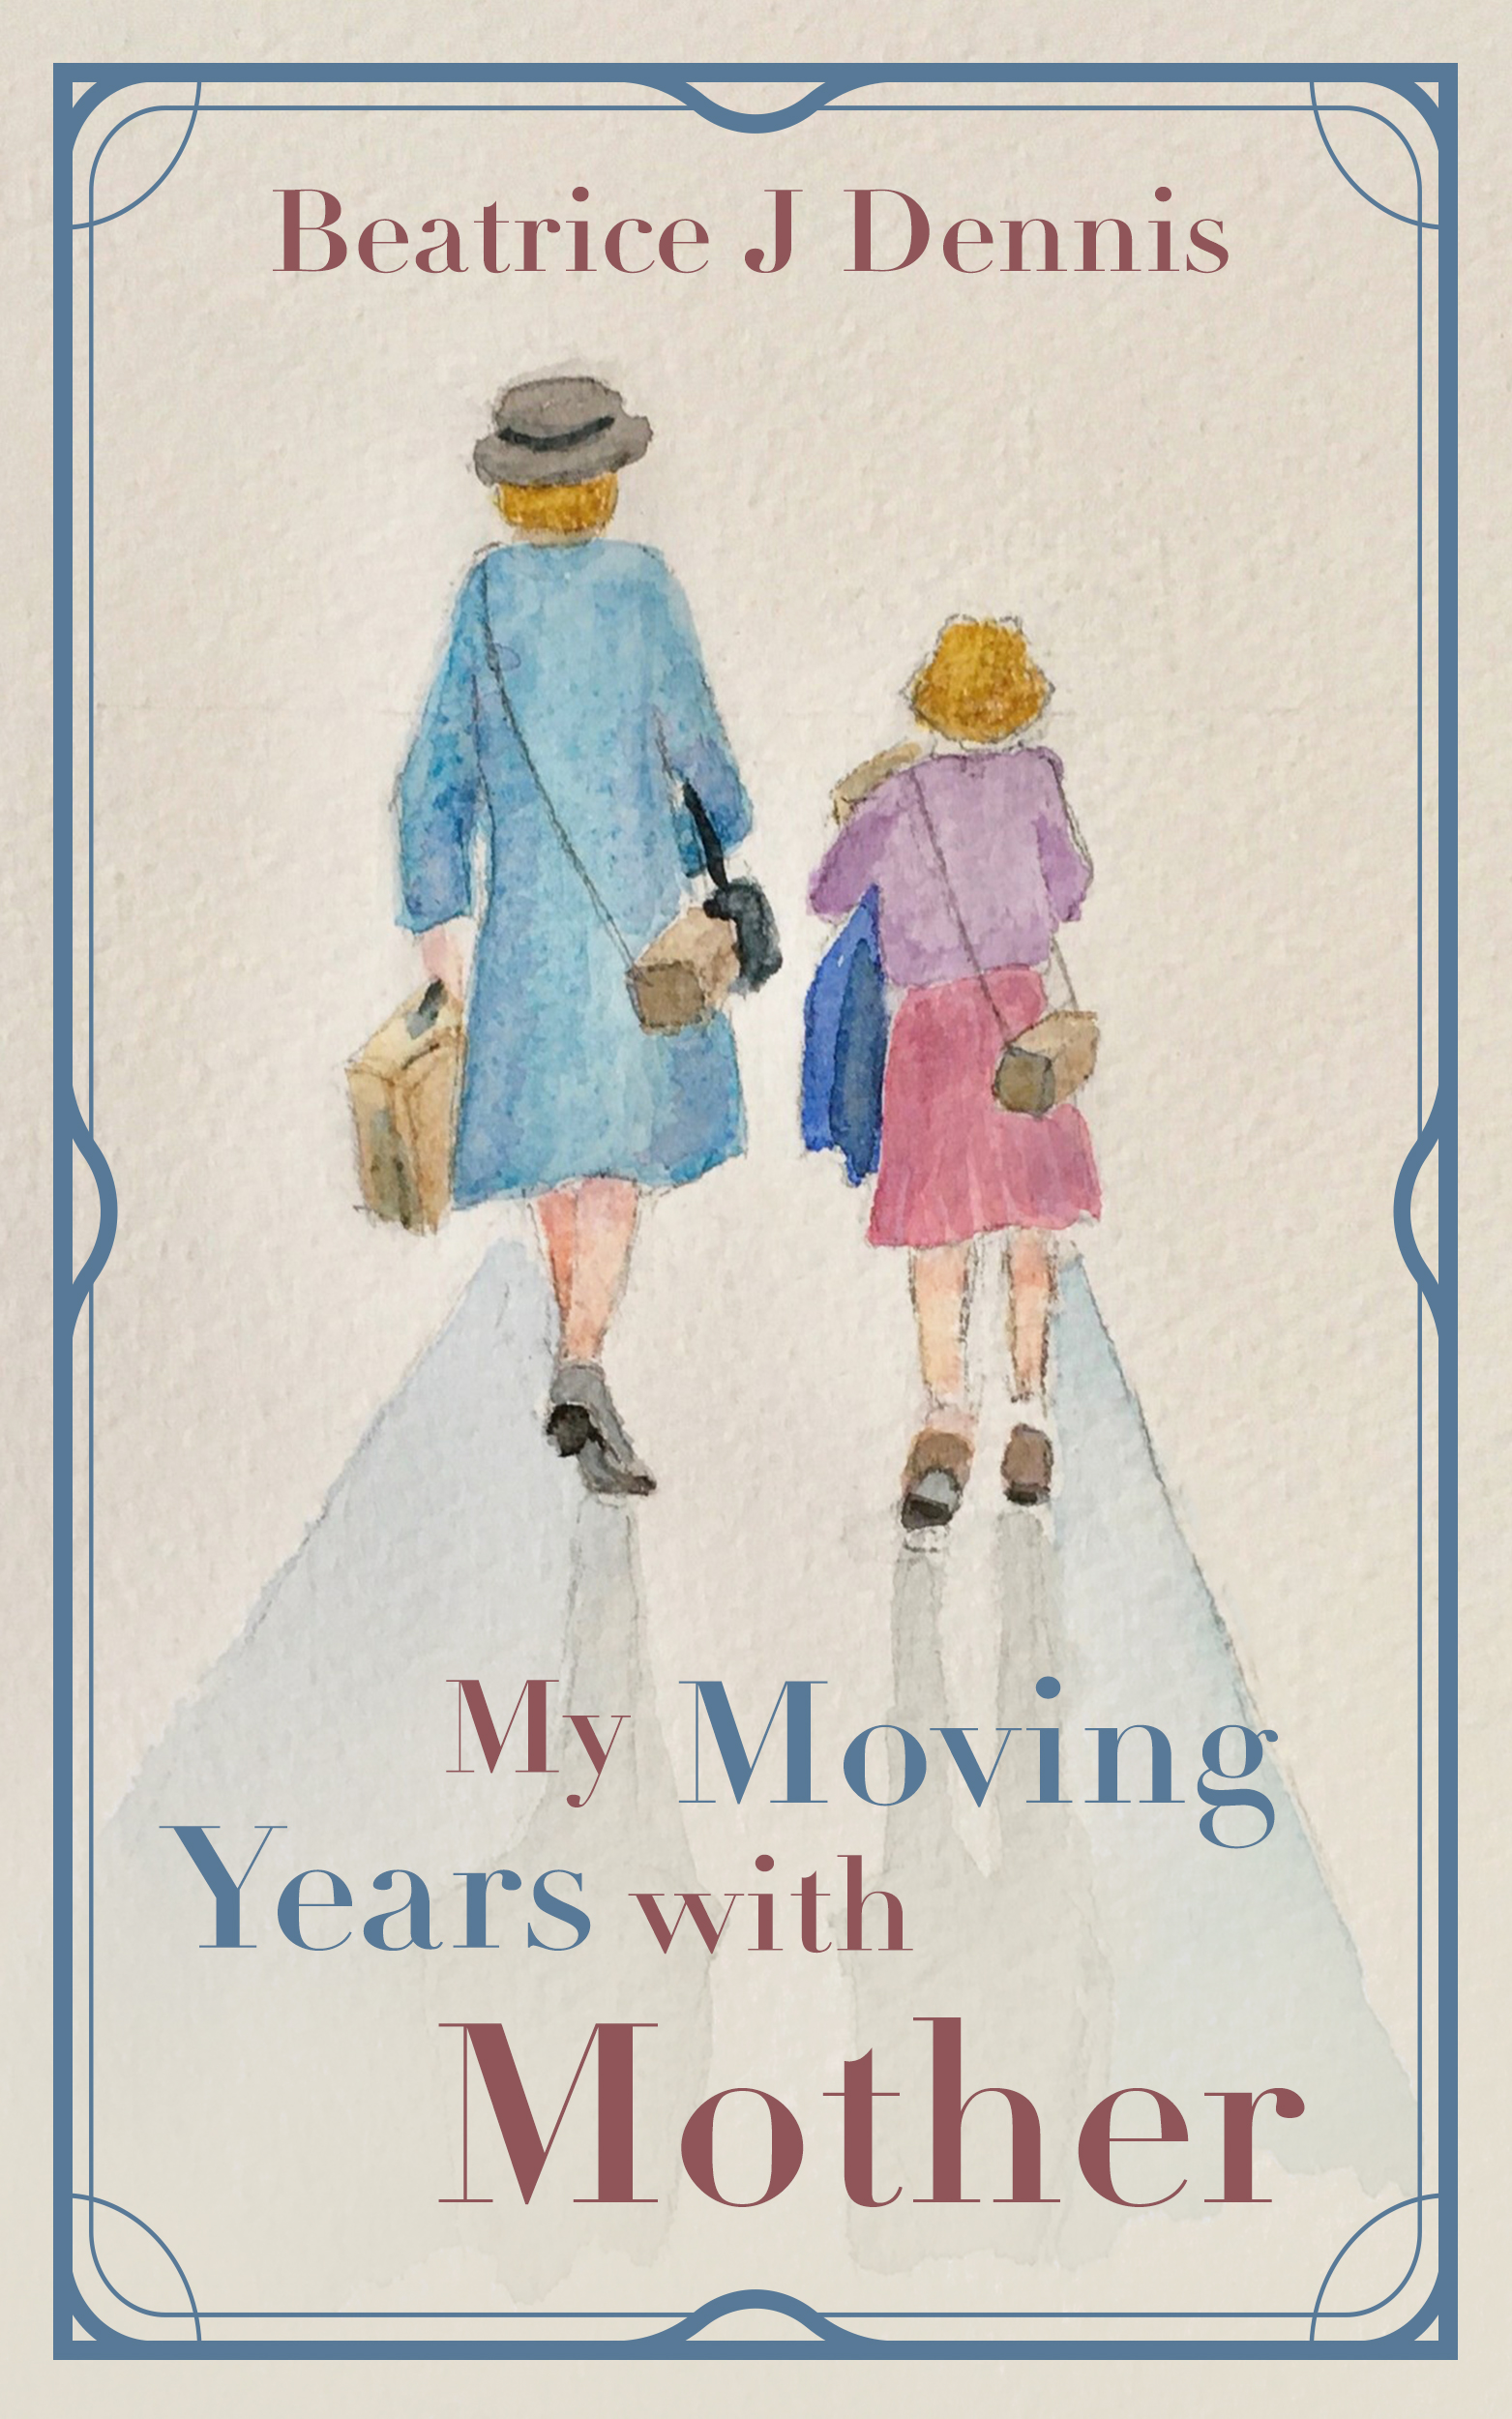 My Moving Years with Mother